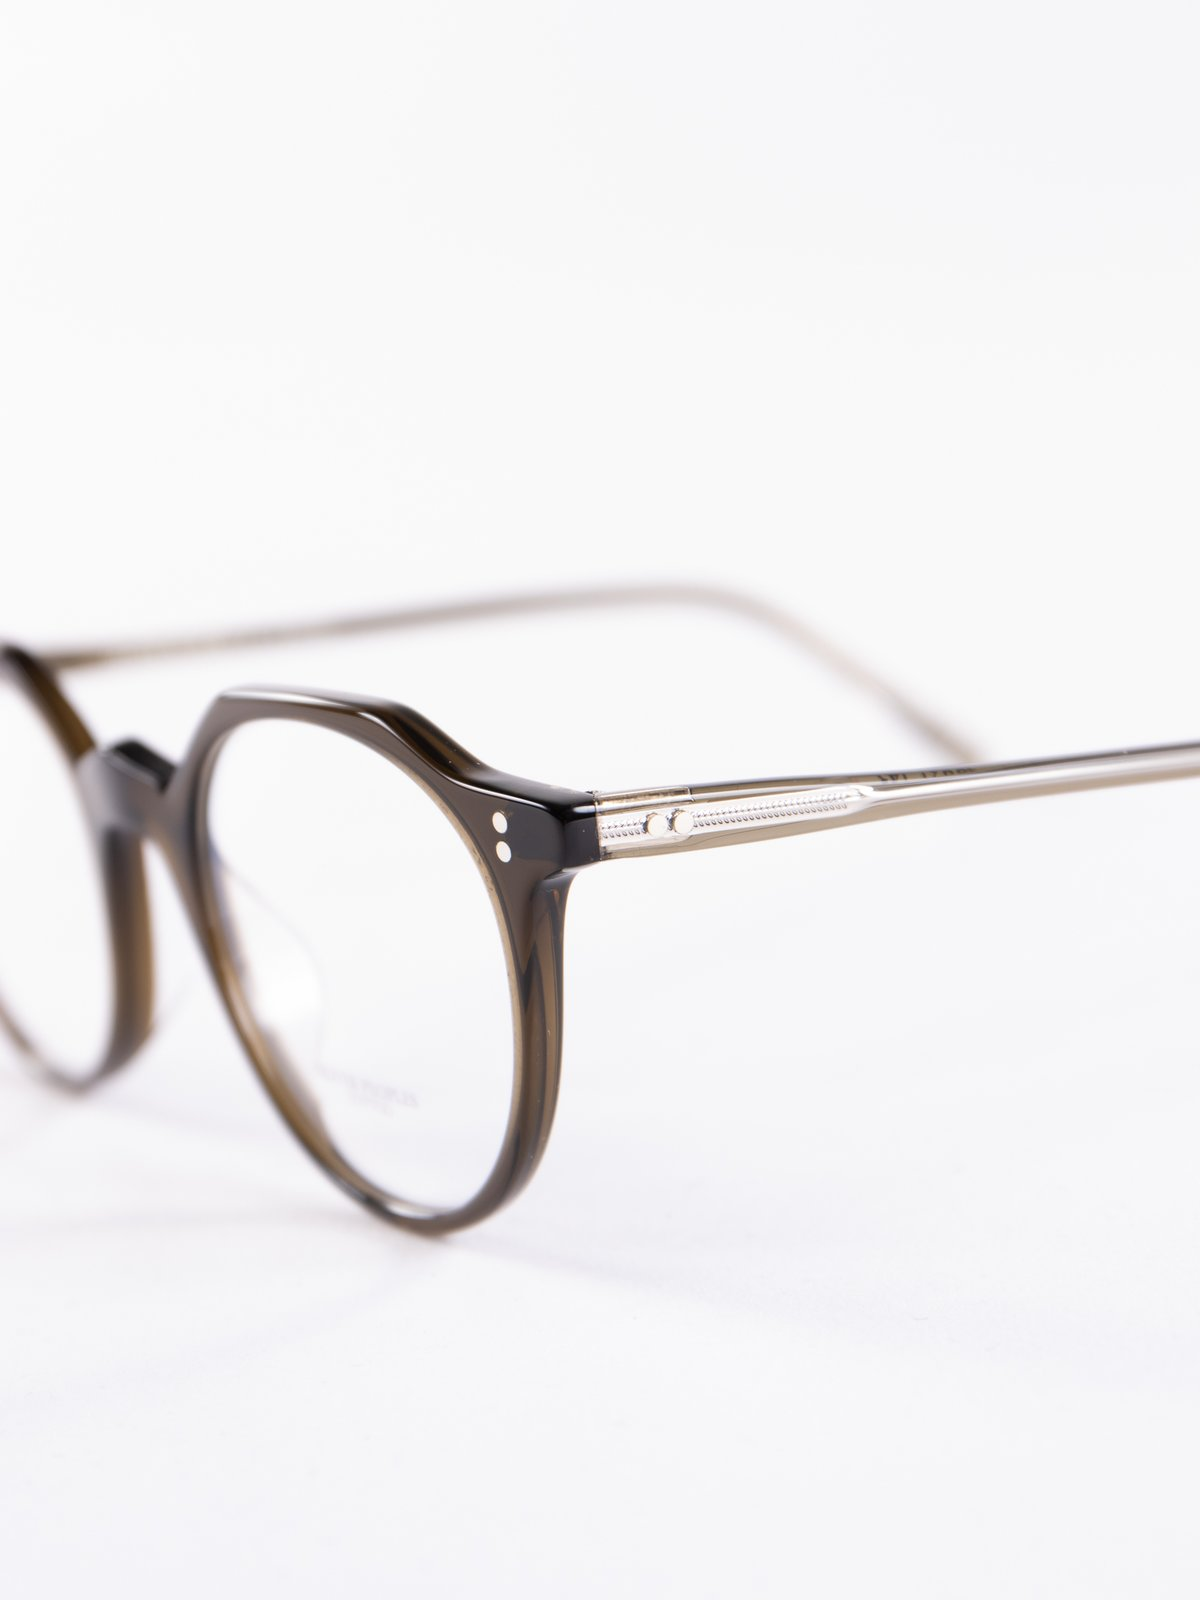 Dark Military Op L 30th Optical Frame By Oliver Peoples